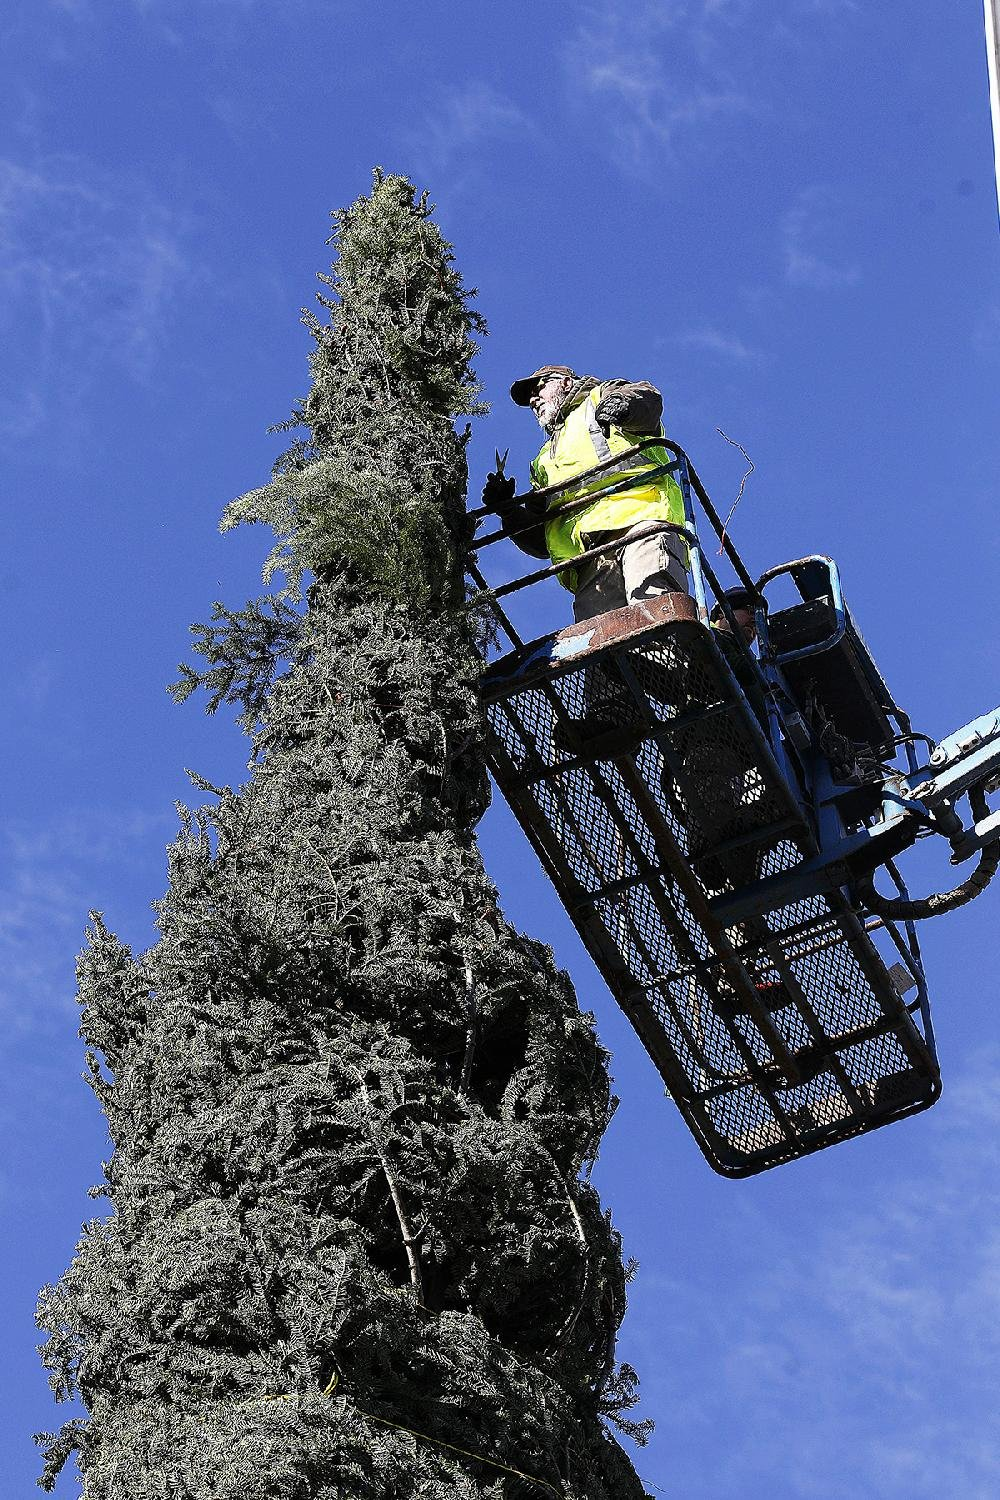 Arkansas Democrat-Gazette/THOMAS METTHE -- 11/10/2018 -- James Short with the Little Rock Parks Department unwraps the 65-foot tall white fir Christmas Tree on Saturday morning, Nov. 10, 2018, at Capitol Plaza in in downtown Little Rock. The tree will be lit on Monday, Nov. 19 at 5:30 p.m. during the Bright the Night lighting ceremony.